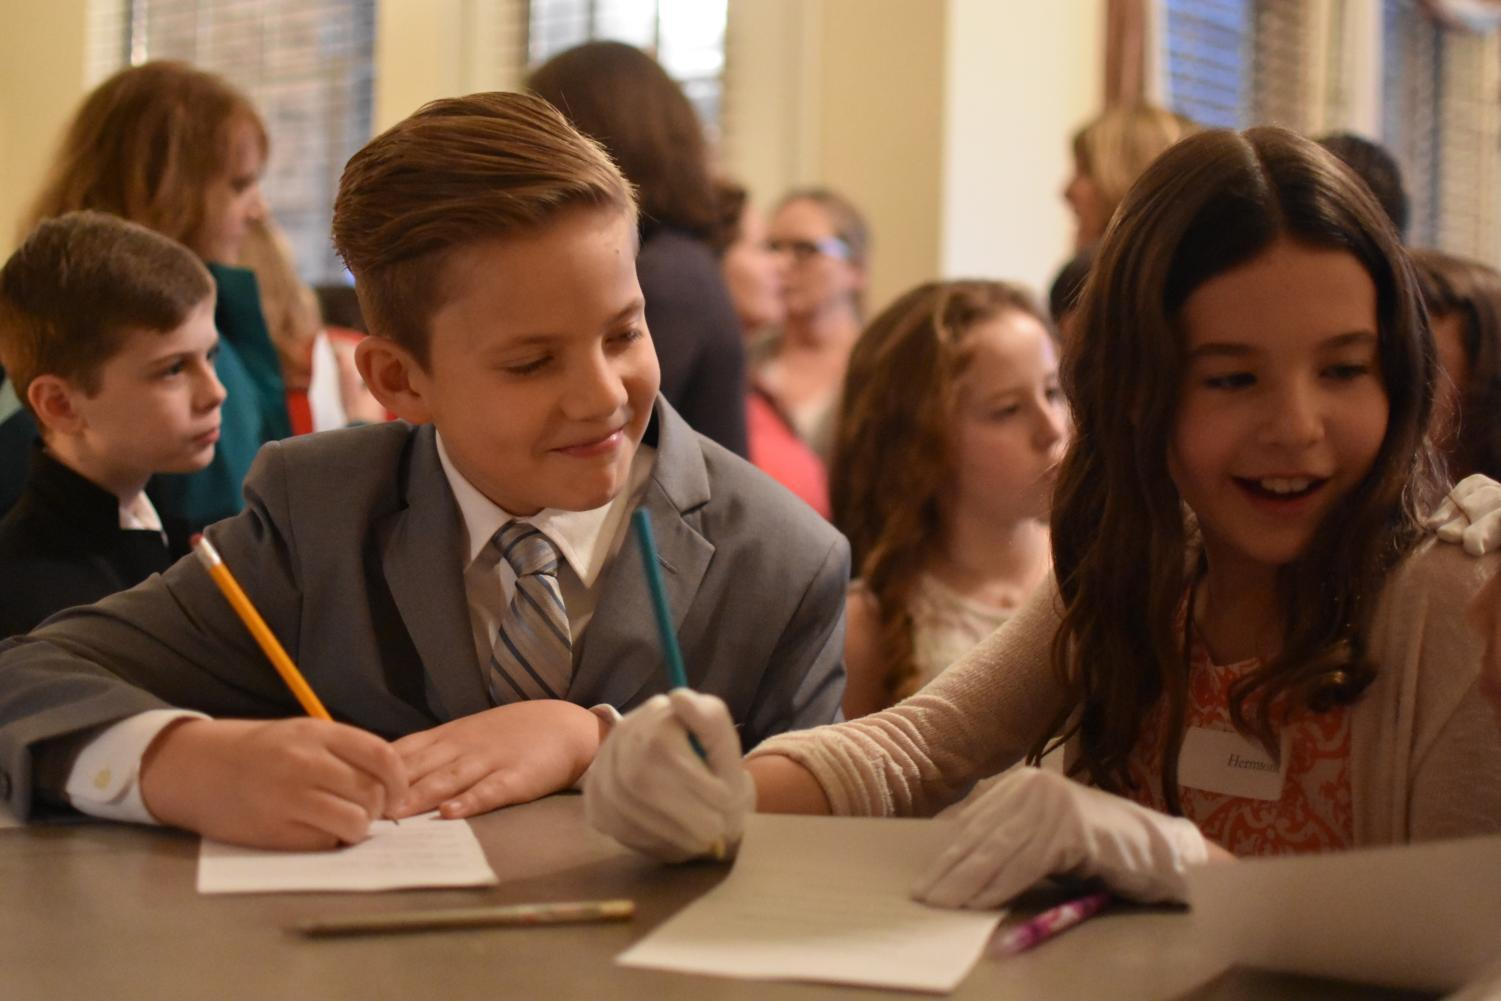 Lakeside+Elementary+students+get+together+on+Feb.+23+before+Friday+night+Cotillion+to+have+snacks+and+interact+with+each+other+along+with+parents.+Cotillion+is+a+class%2C+typically+for+elementary+or+middle+school+kids%2C+in+which+they+learn+basic+table+manners%2C+social+manners+and+formal+dances.